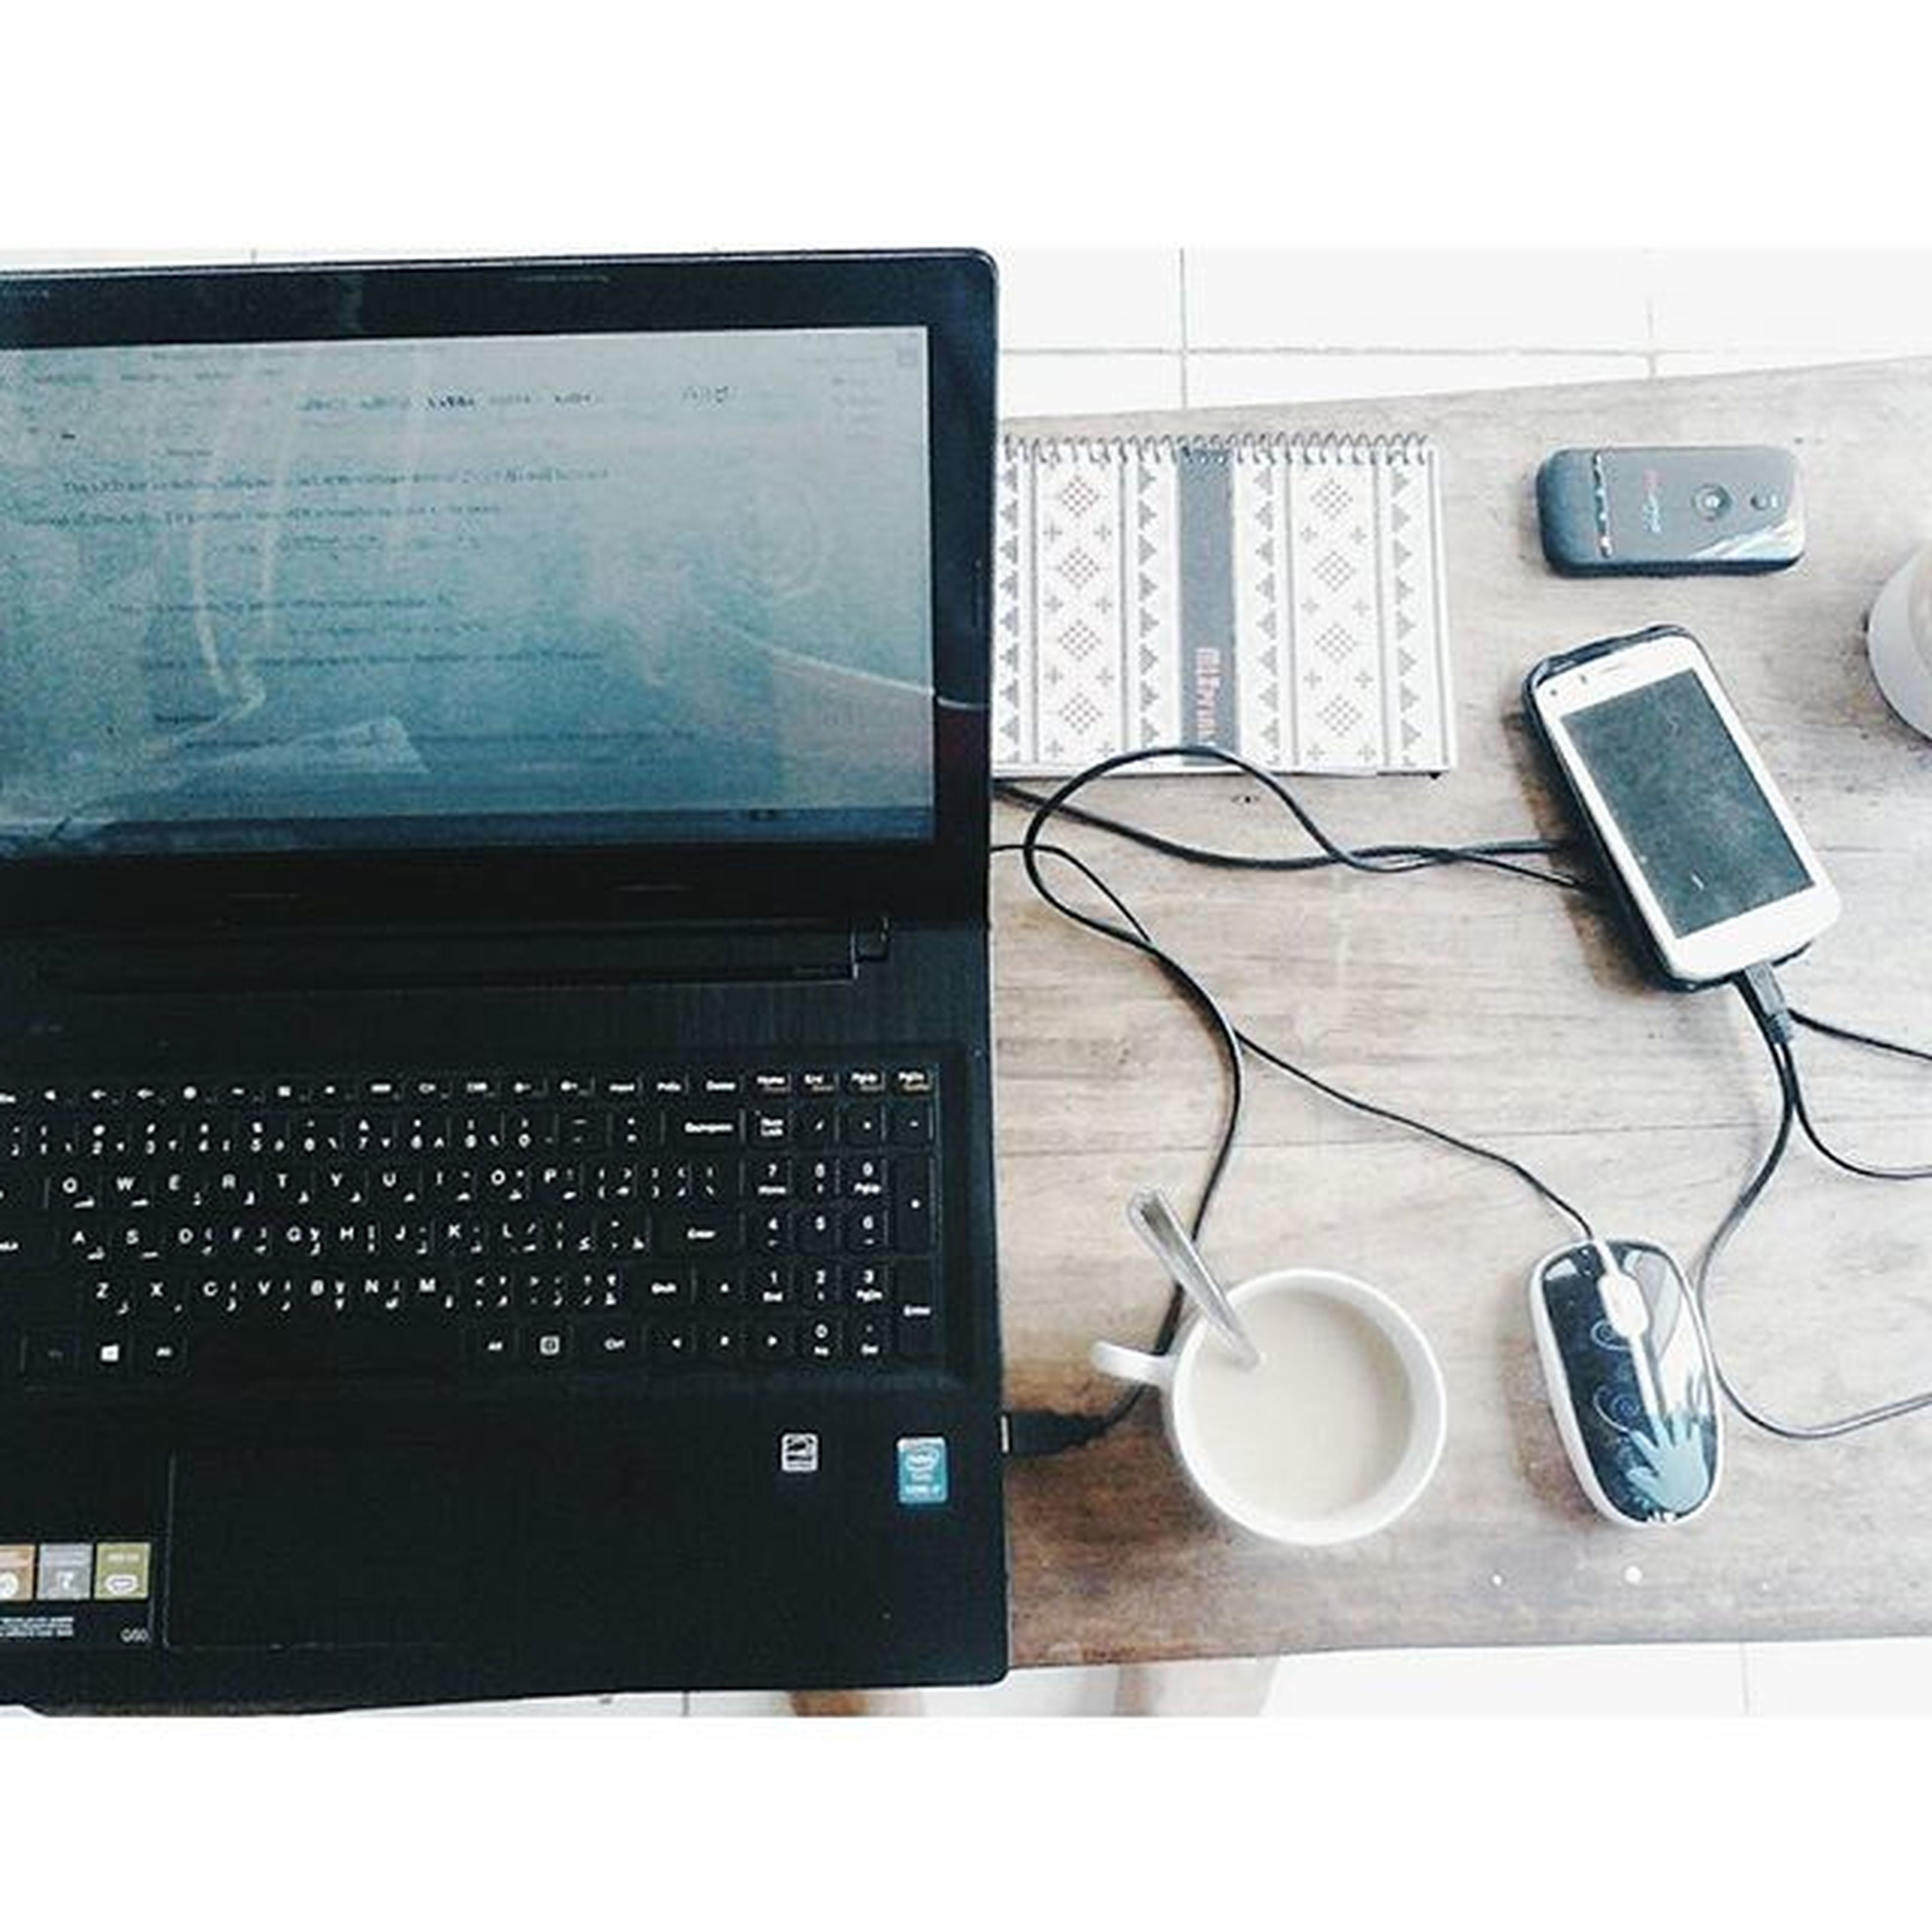 indoors, table, technology, communication, still life, connection, book, wireless technology, computer, laptop, close-up, desk, paper, absence, education, pen, equipment, chair, music, high angle view